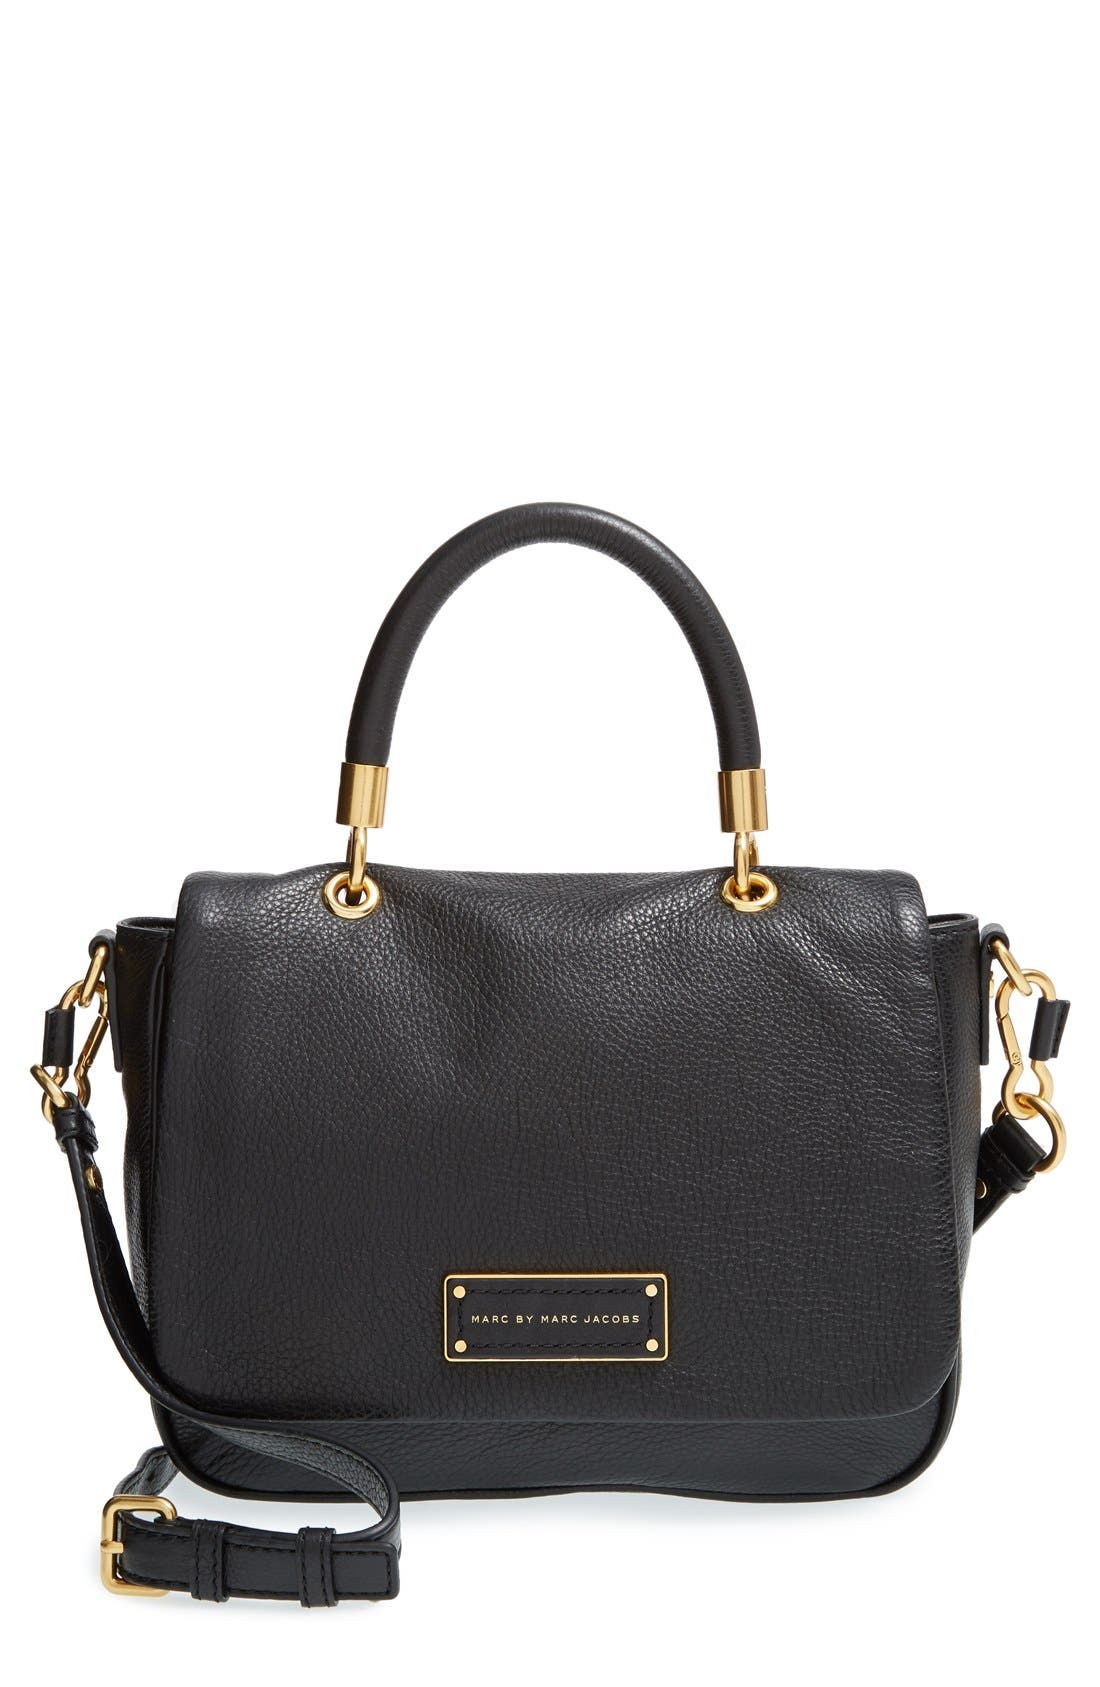 MARC BY MARC JACOBS 'Small Too Hot To Handle' Leather Tote,                         Main,                         color, Black